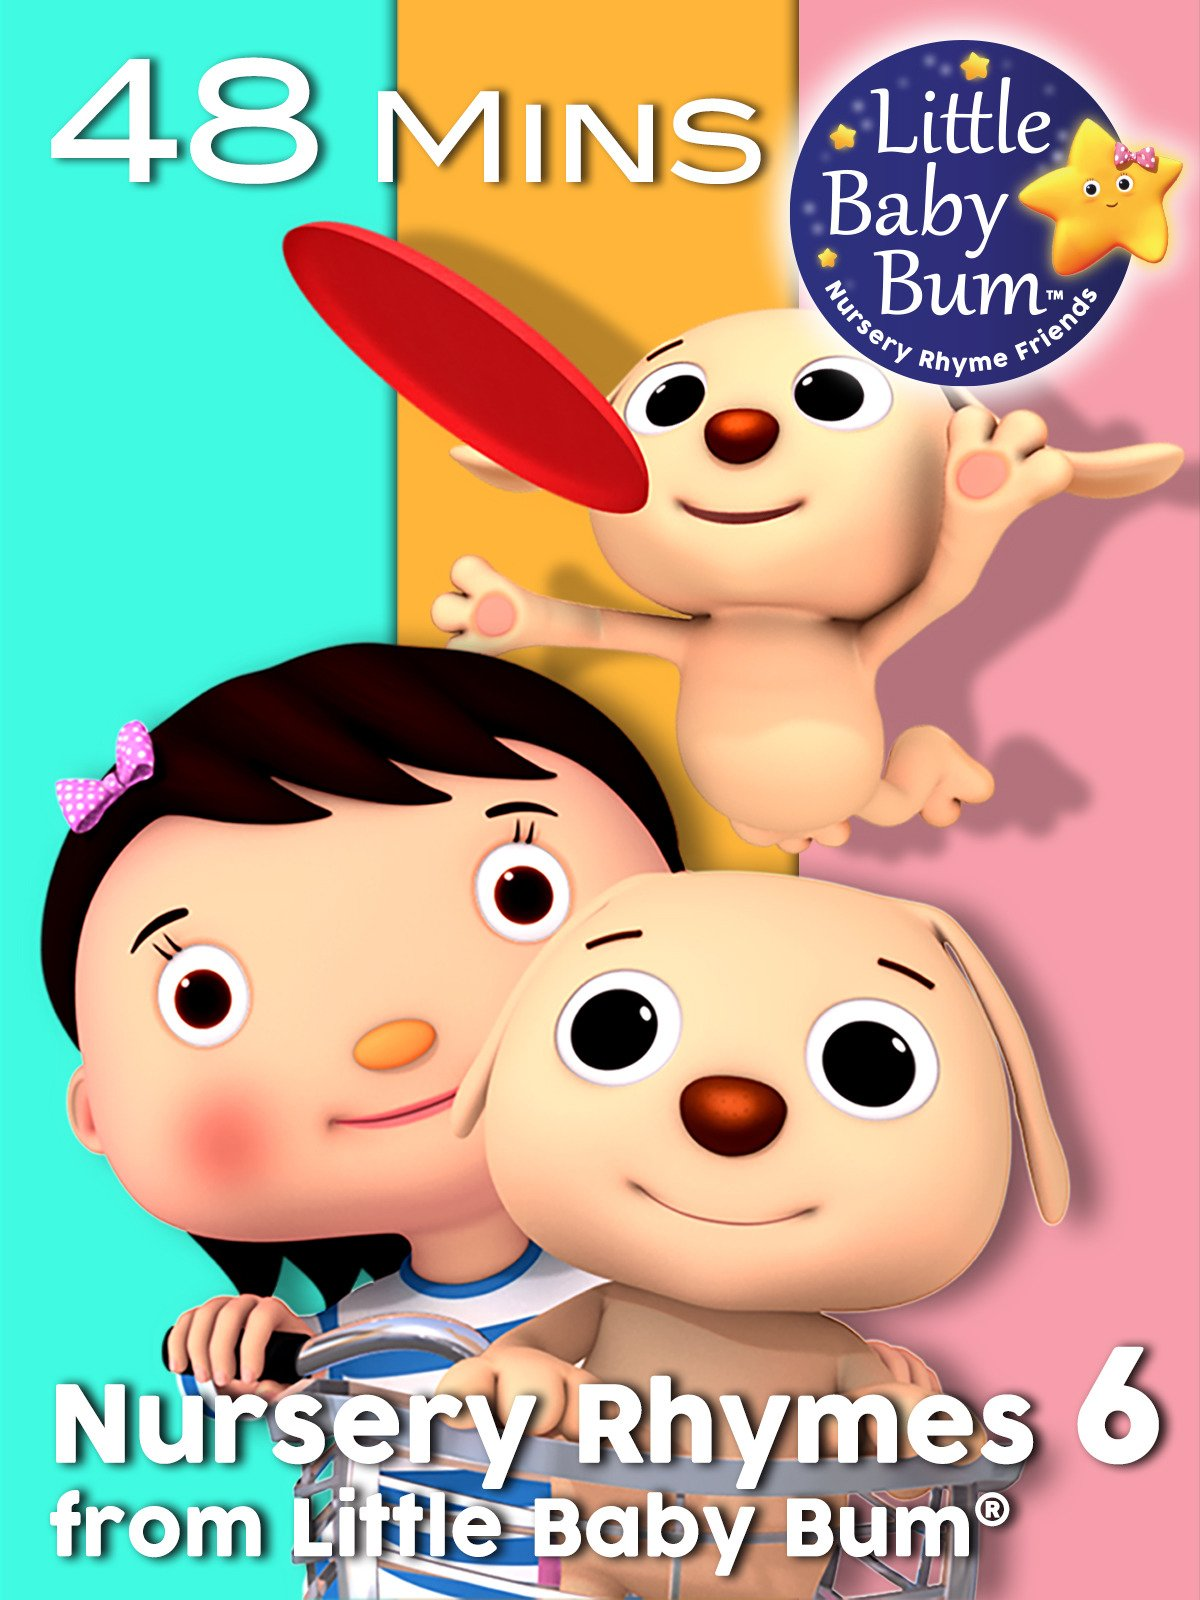 Nursery Rhymes Volume 6 by Little Baby Bum on Amazon Prime Instant Video UK